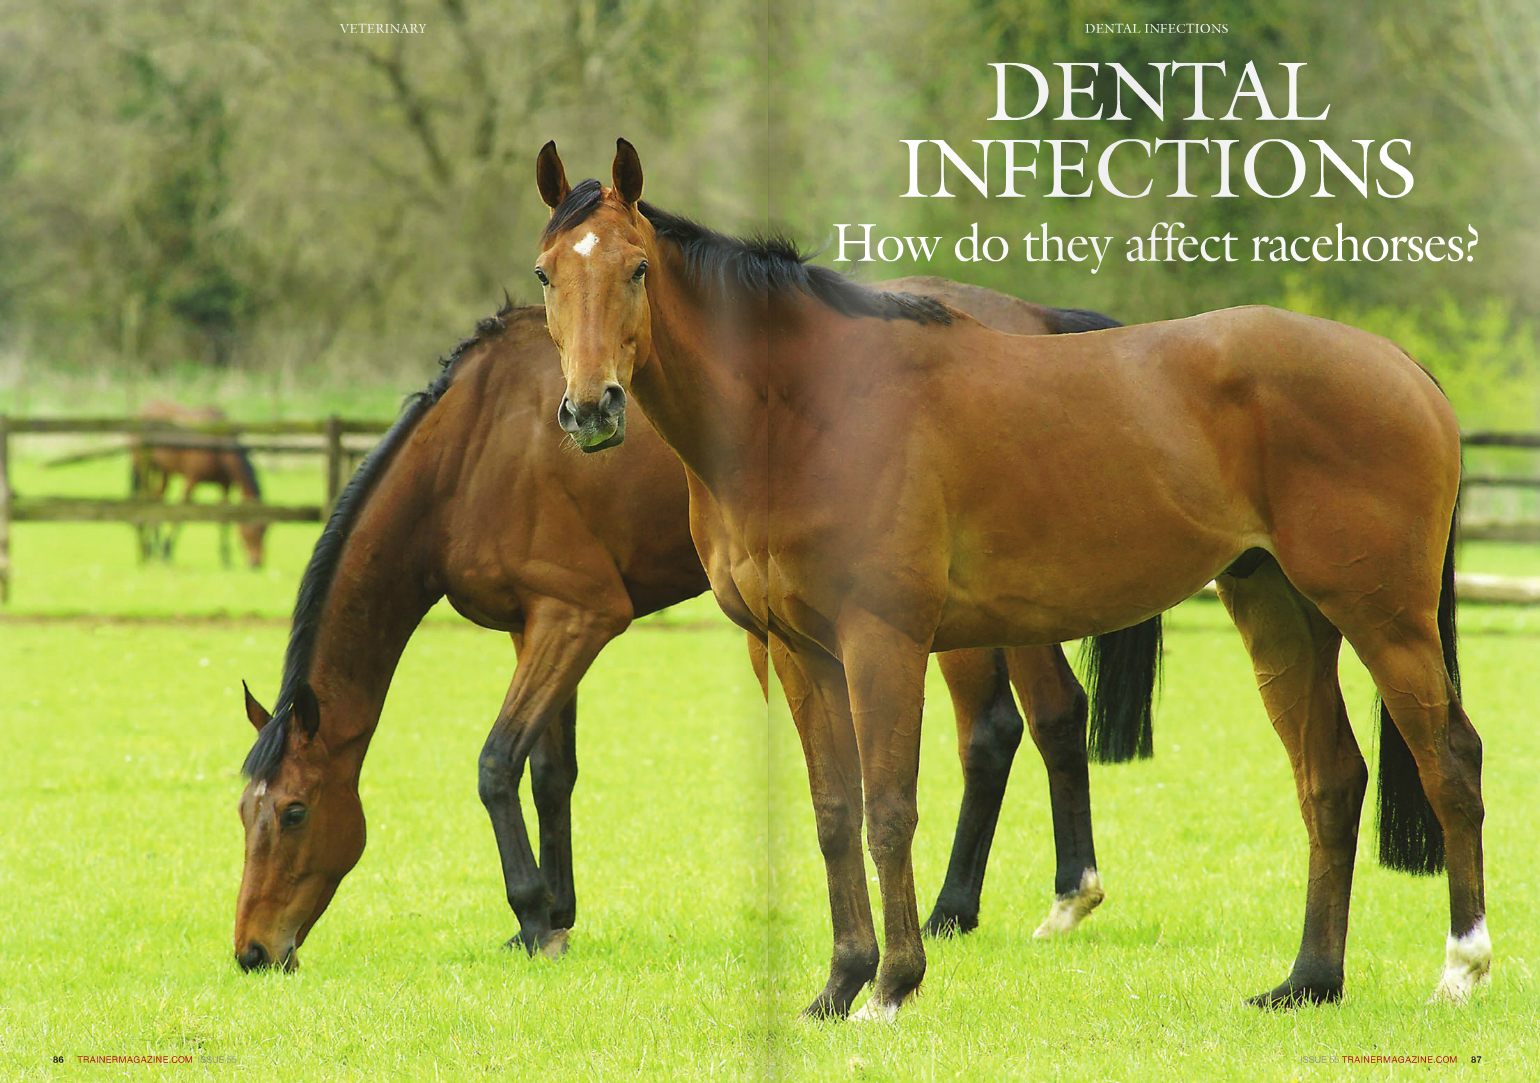 """What is a dental infection? The terms """"dental abscess,"""" """"tooth abscess,"""" """"dental infection,"""" """"apical infection,"""" and """"apical pulpitis"""" are all used to describe infections of the soft dental pulp inside the tooth which is a endodontic disease. This is in contrast to infections of the structures on the outside of the teeth or between them that are termed """"periodontal infections,"""" which are much more common in horses overall but are mainly seen in middle-aged and older horses. Why are dental infections significant to horses in training? Horses' teeth continue to erupt throughout the horse's life to replace the surfaces that are gradually worn away by chewing of cereal and forage foods. This is in contrast to the teeth of carnivores and primates whose teeth do not grow in adult life. In horses, the permanent teeth emerge from the jaws between the ages of one and five years, pushing out the deciduous (milk) teeth as they do so. For the next few years, the permanent teeth are actually growing in length from the root end as well as erupting. This period of very dynamic development within the horse's mouth often coincides with the peak athletic career of many racehorses and other equine athletes. How do endodontic infections affect the horse? It is easy to think of the teeth as inert lifeless structures, but they are actually complex, living structures which, like other tissues in the body, are susceptible to infection and disease. The soft dental pulp inside the tooth is essential to provide blood and nervous supply to the cells inside the teeth. These cells, called odontoblasts, are living tissue and are essential to the health of the tooth, as they produce dentine and repair the tooth from the inside in response to the stresses and micro-damage of normal chewing. More importantly, equine teeth, in contrast to our own teeth, have a bridge of secondary dentine, which replaces the dentine that is worn off the surface during normal chewing and separates the delicate pulp ins"""